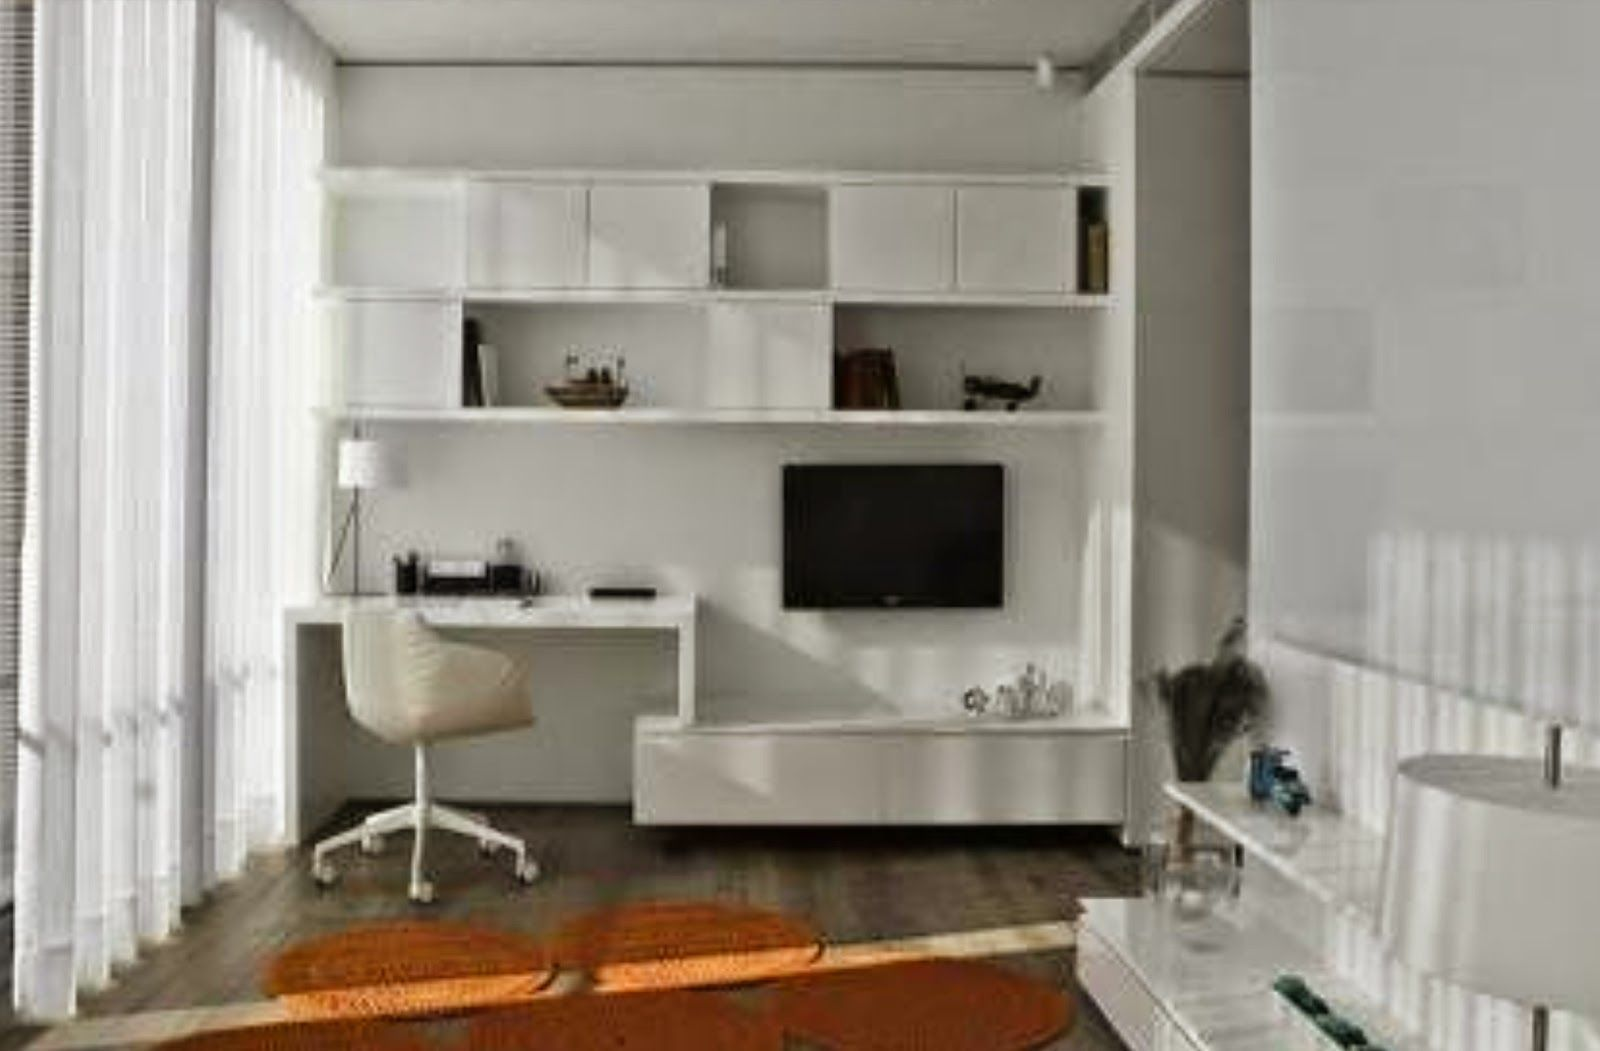 Home Office For Two An Ikea Hack Home Office Design Ikea Wall Units Home Study Design